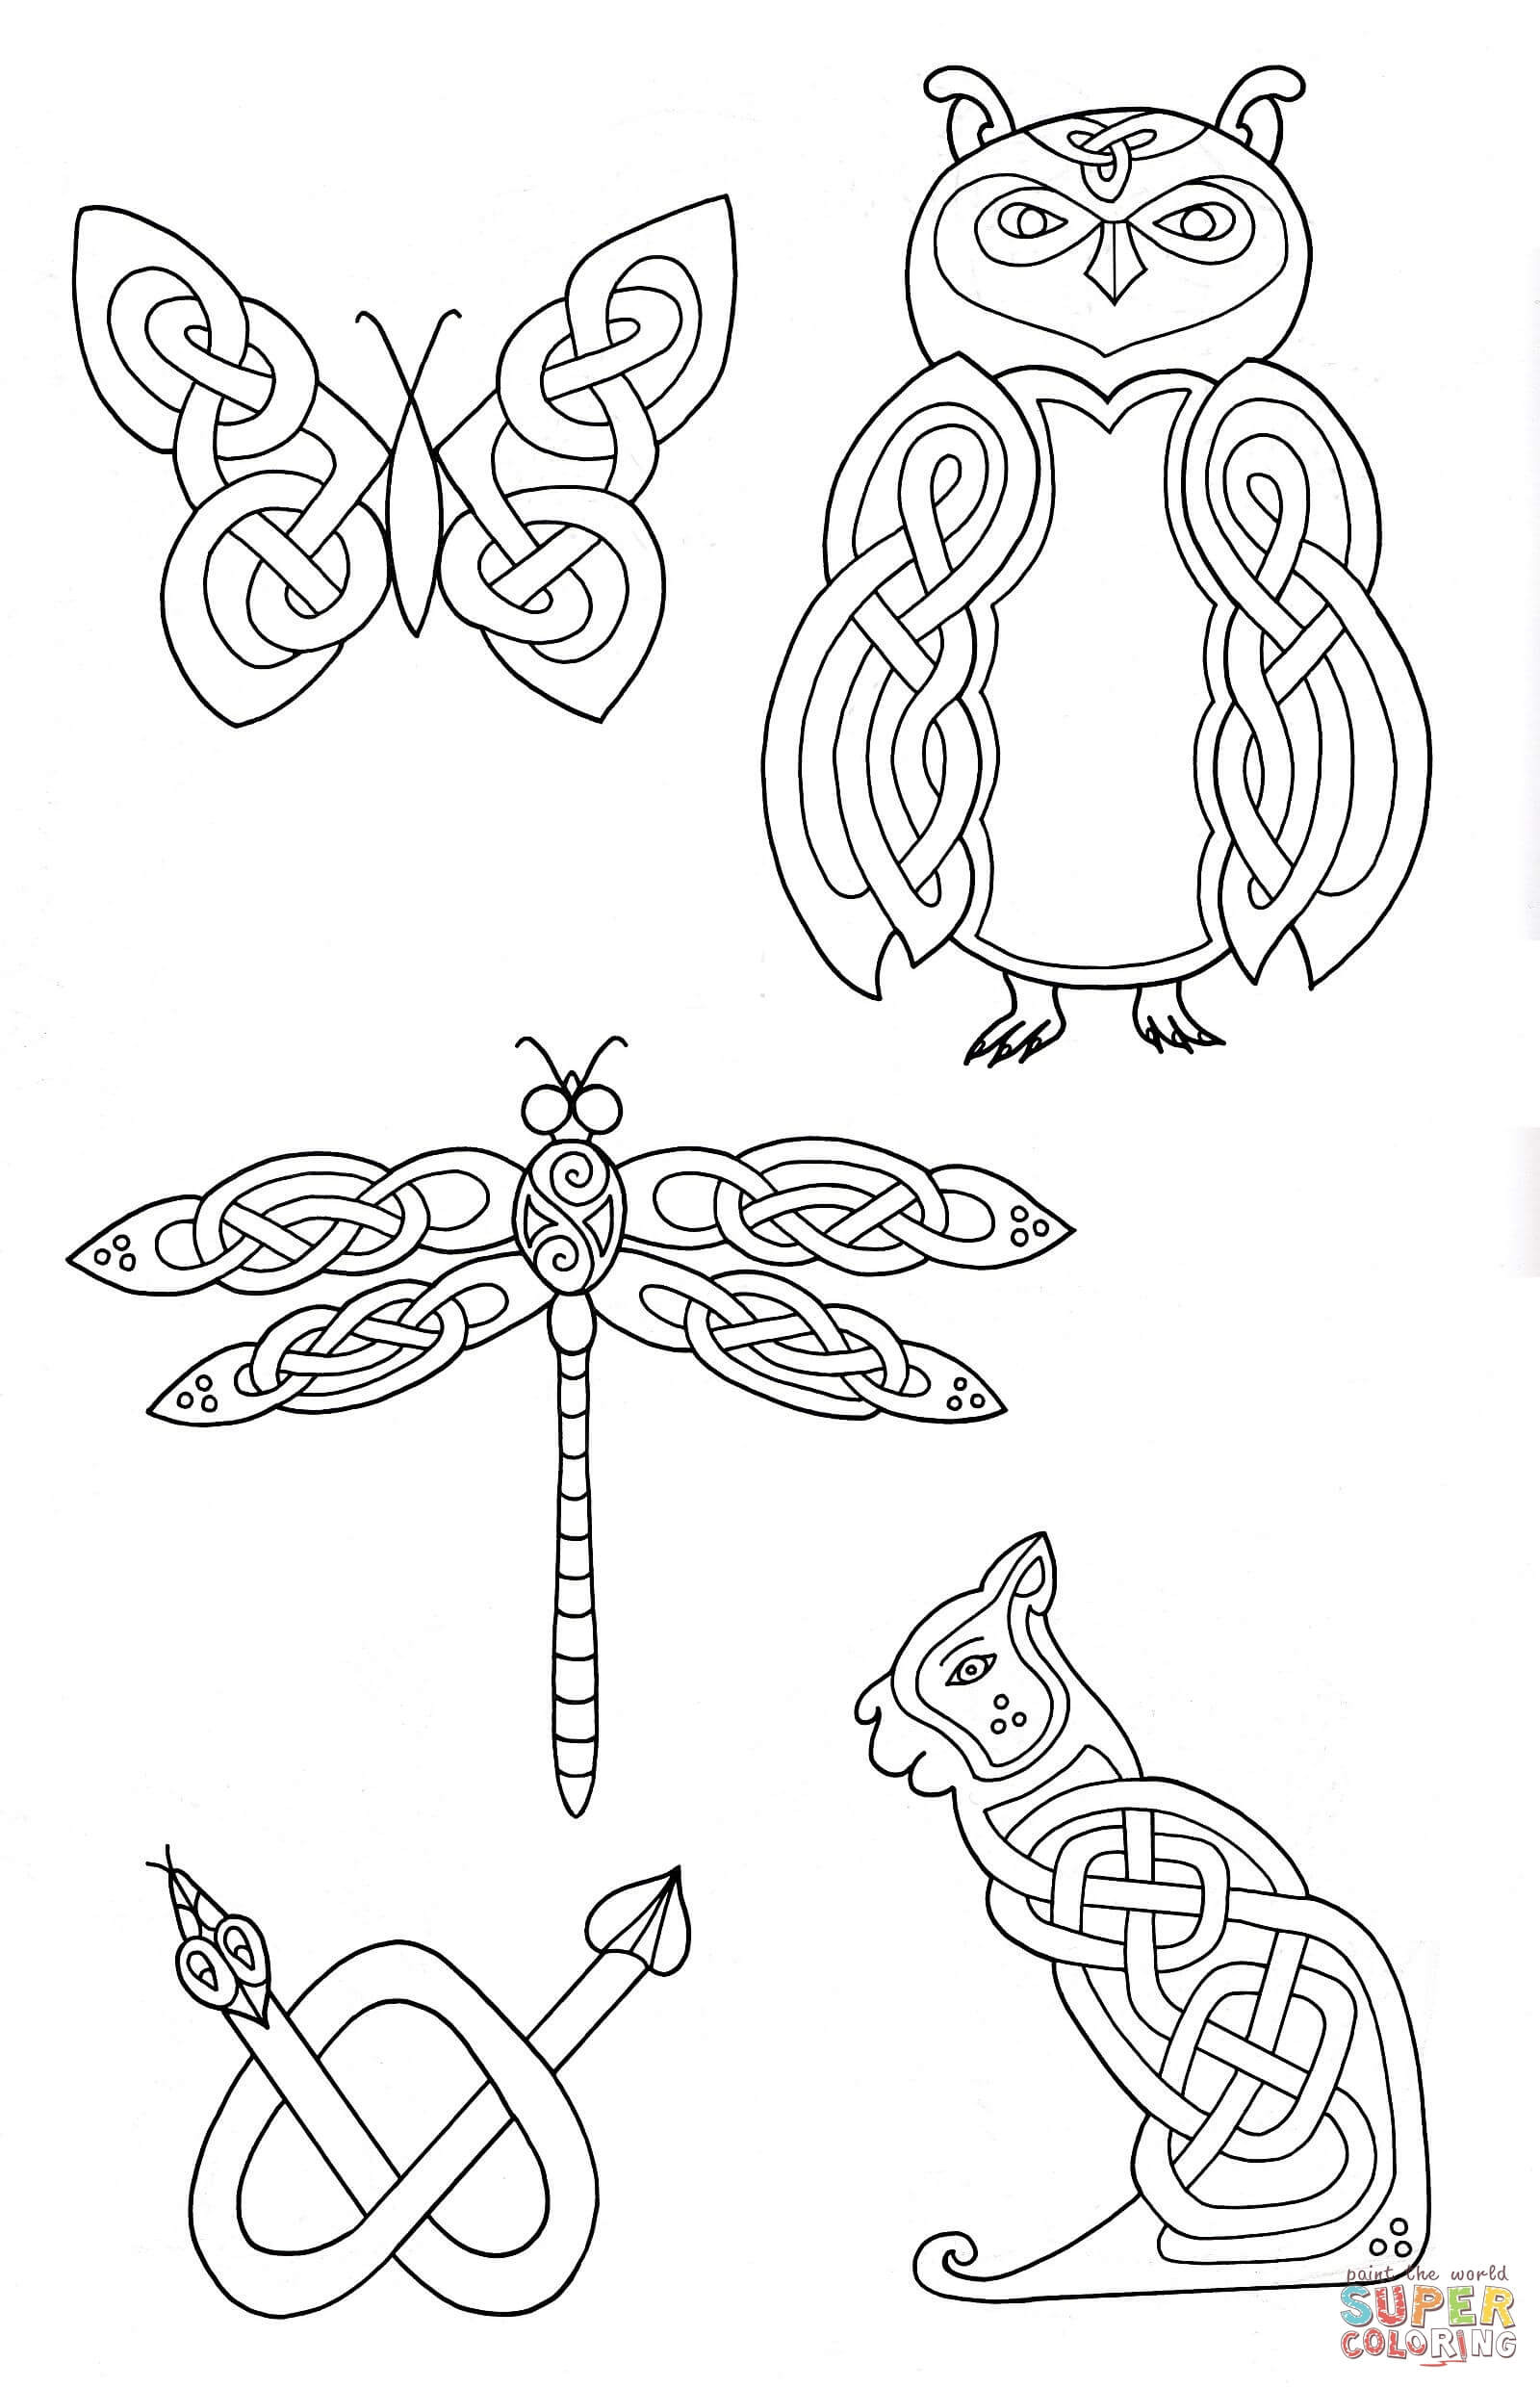 Super Easy Viking Foot Ball Super Bull Coloring Pages For Boys  Celtic Animals Designs 2 coloring page